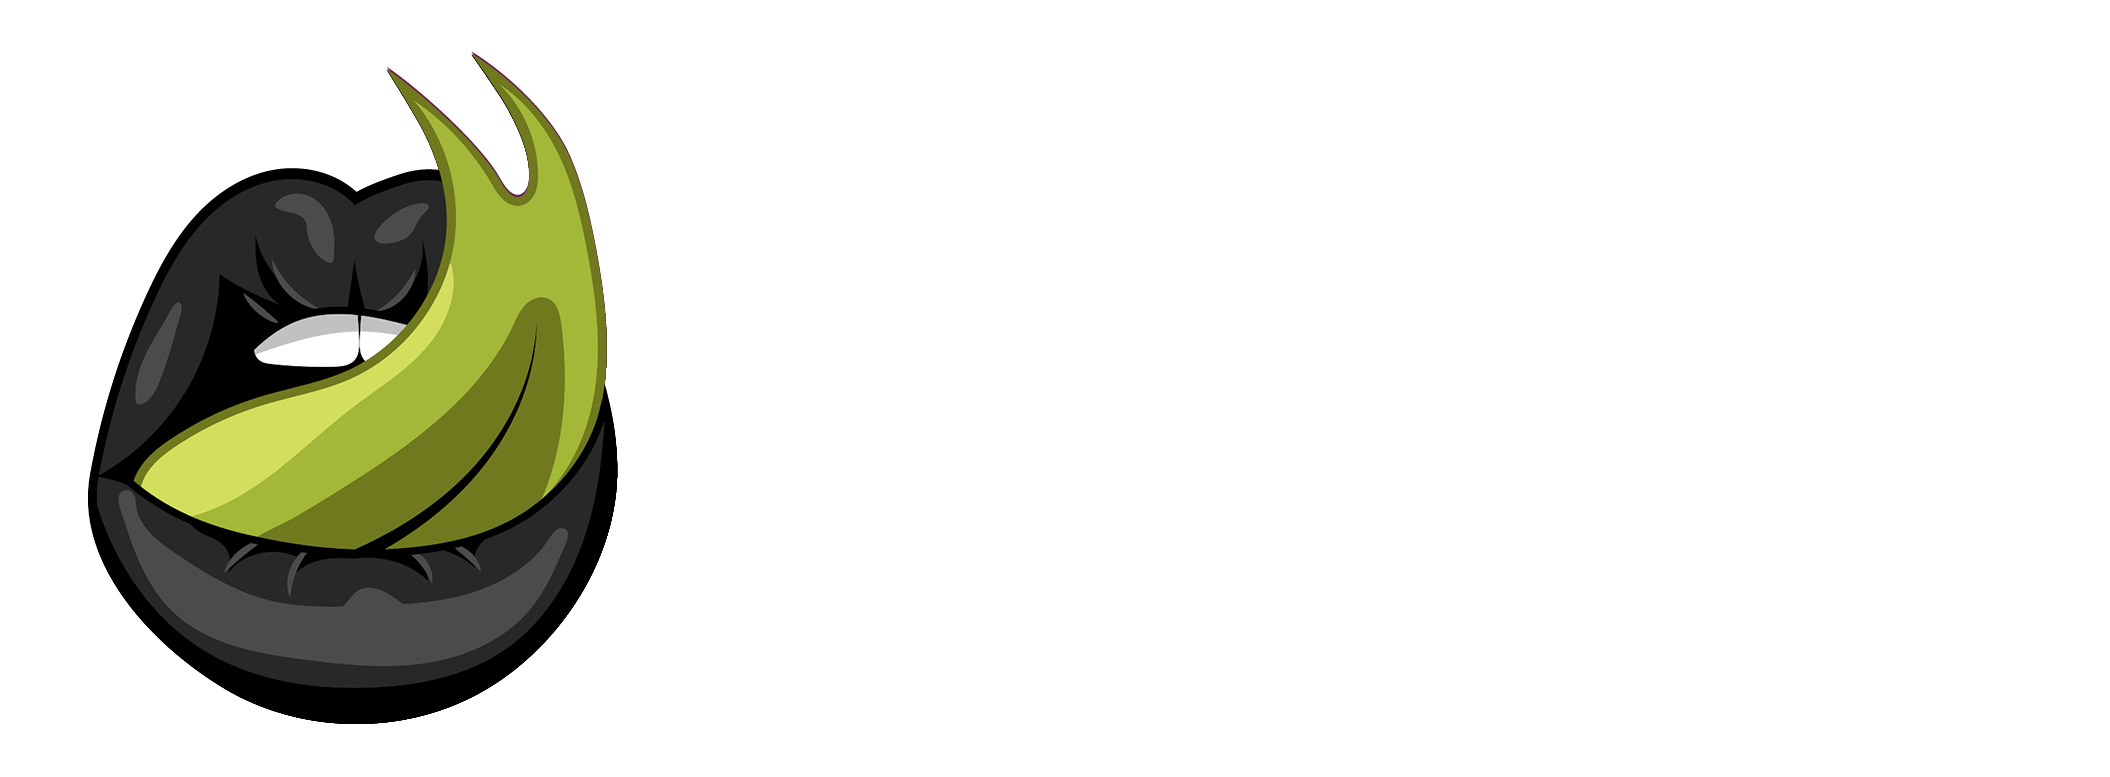 White version of Disobey's logo.